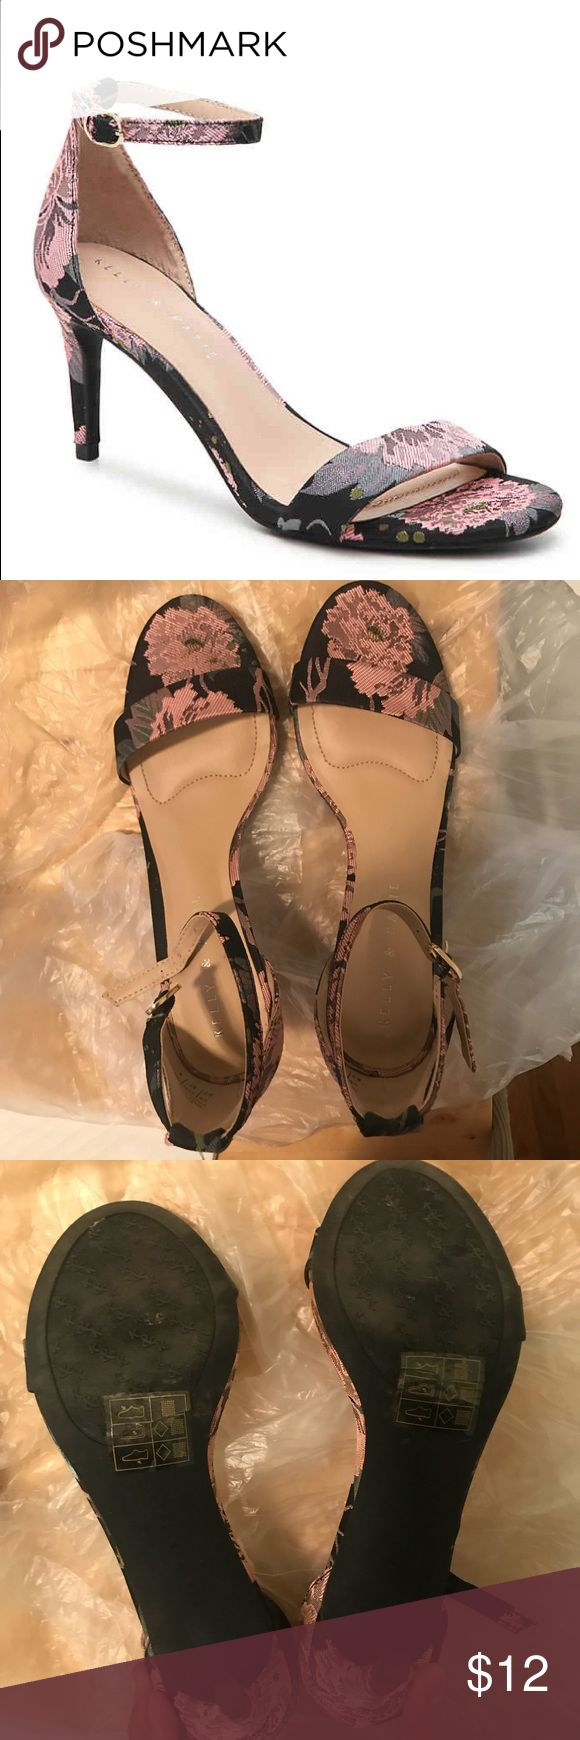 """Kelly & Katie floral print strappy heels Only worn once for a wedding!   3"""" covered heel Cushioned foot bed Adjustable ankle strap Round open toe Synthetic sole Kelly & Katie Shoes Heels"""